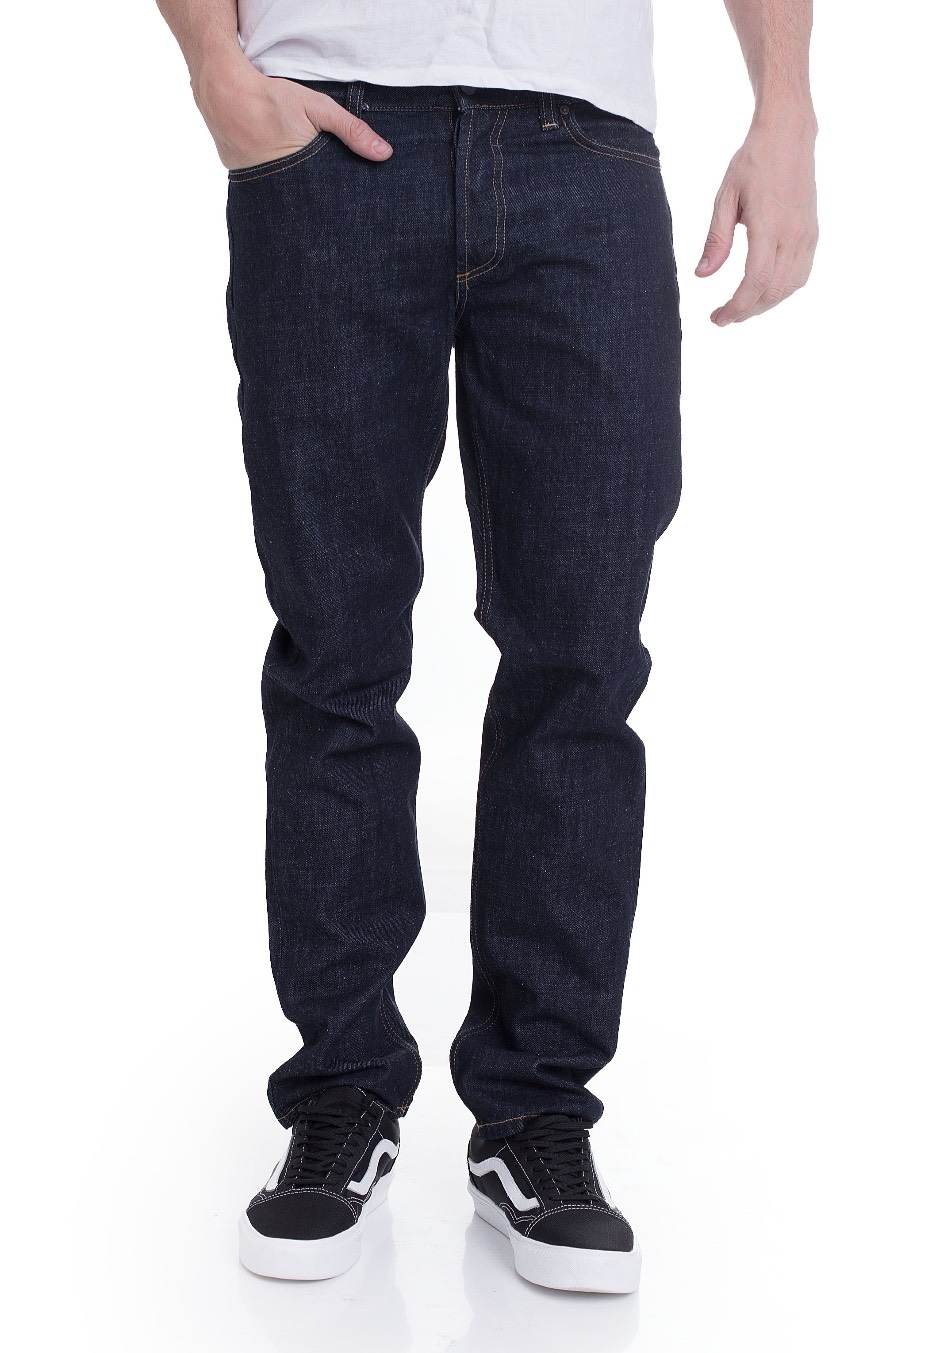 622220cfcaf Carhartt WIP - Texas Edgewood Blue Rinsed - Jeans - Streetwear Shop -  Impericon.com UK